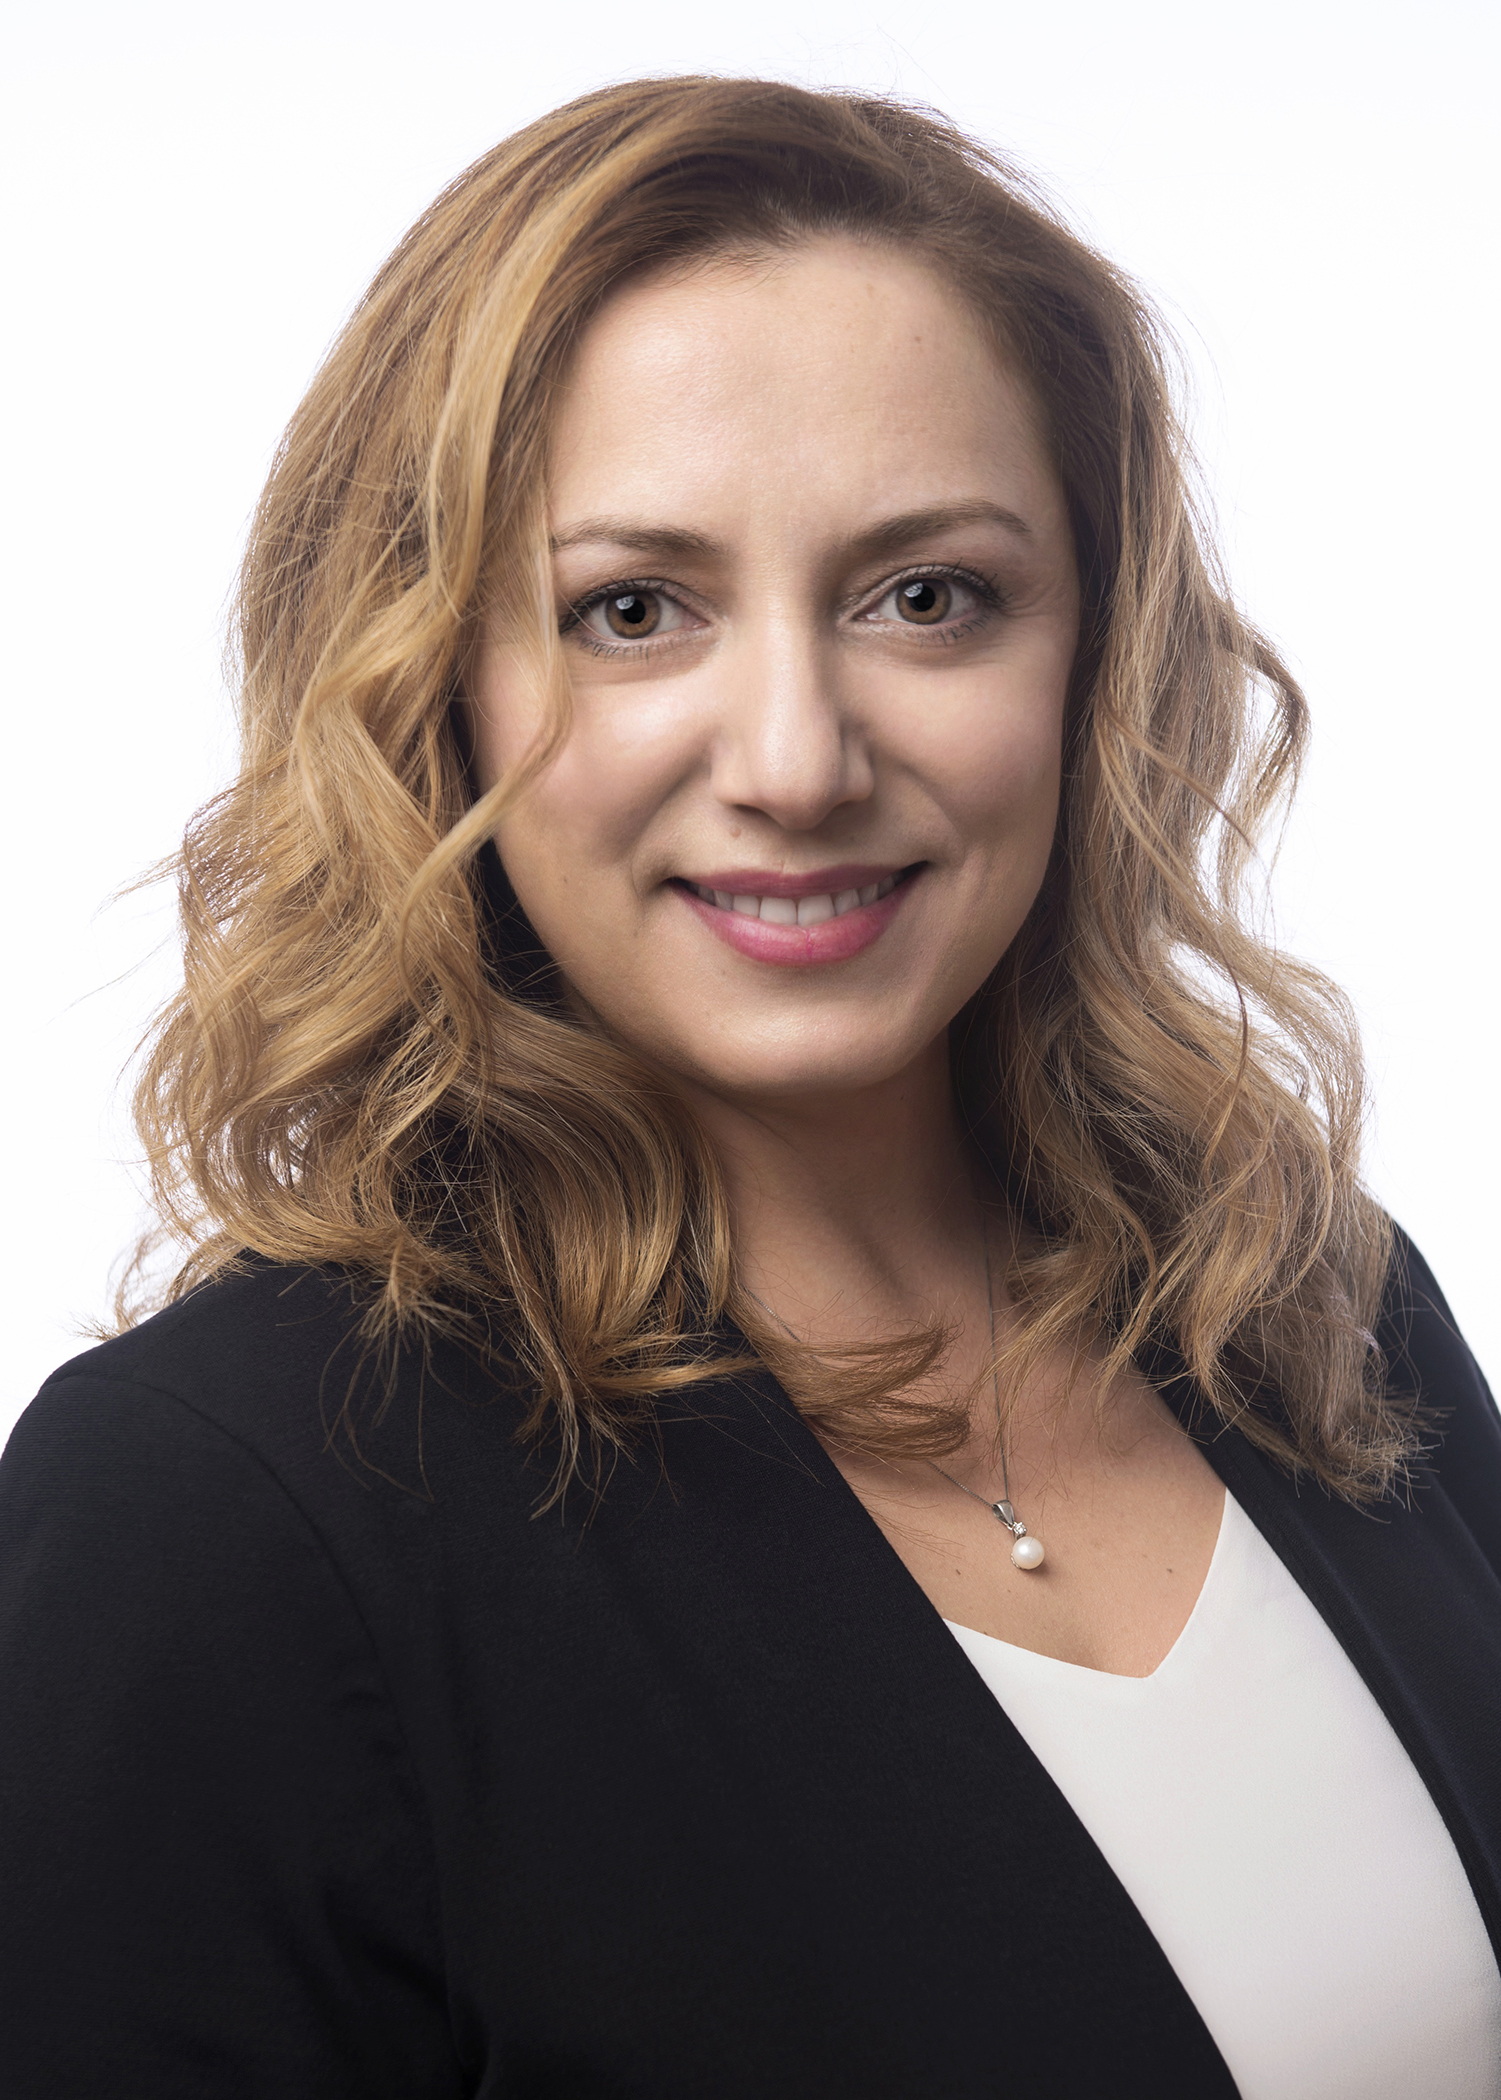 Dilek Oral-Ozdemirci  PMP, CSM, ITIL, SAFE© Program Consultant  Certified Lead Appraiser for CMMI-DEV v1.3 & CMMI® V2.0  Certified Introduction to CMMI-DEV v1.3 Instructor & CMMI® V2.0